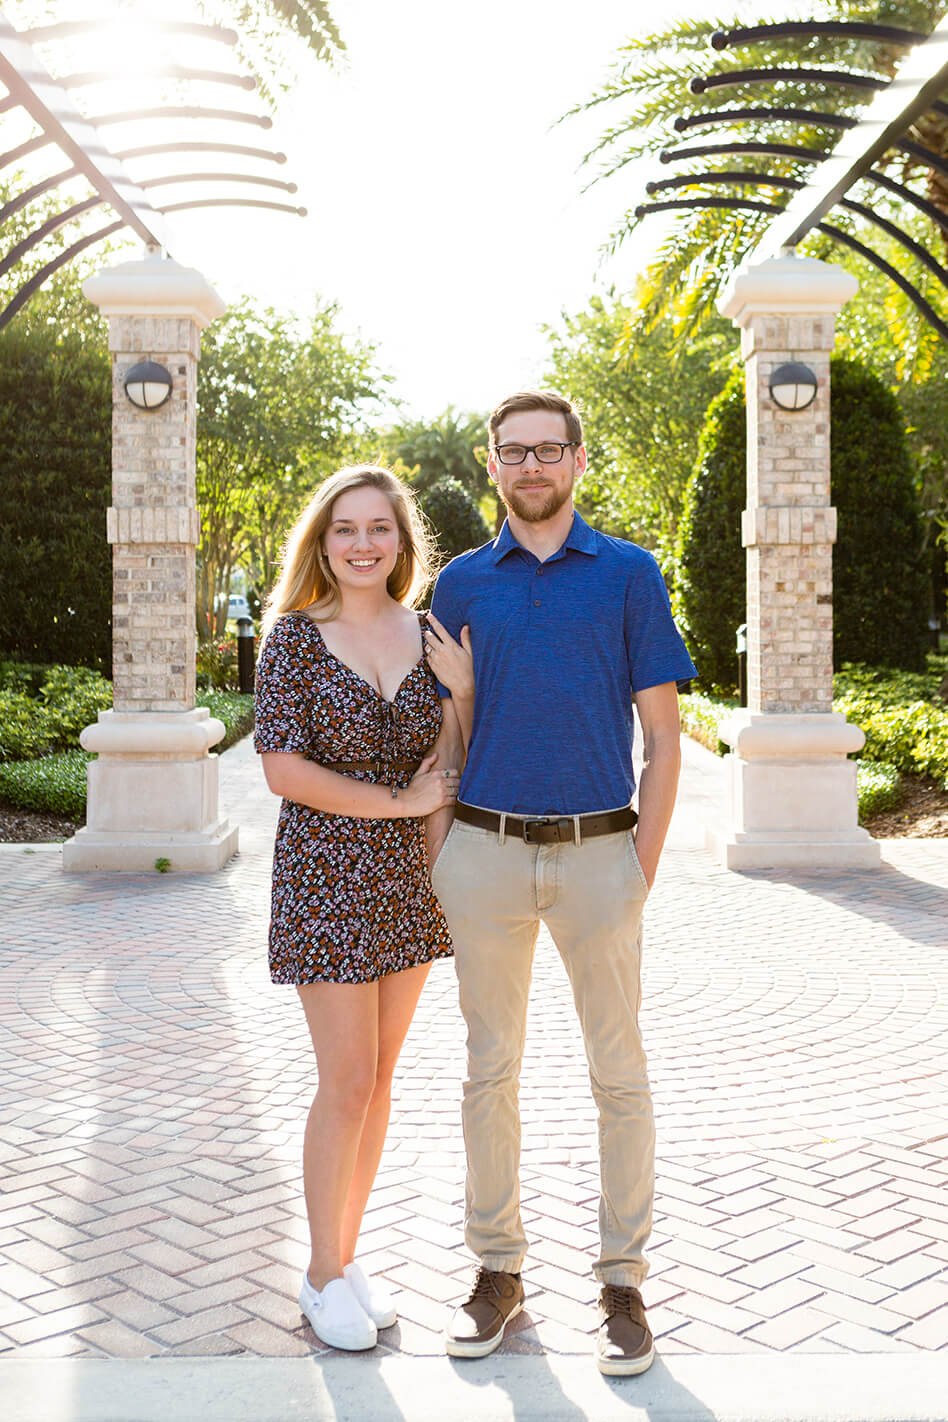 Winter Springs, Florida engagement photos